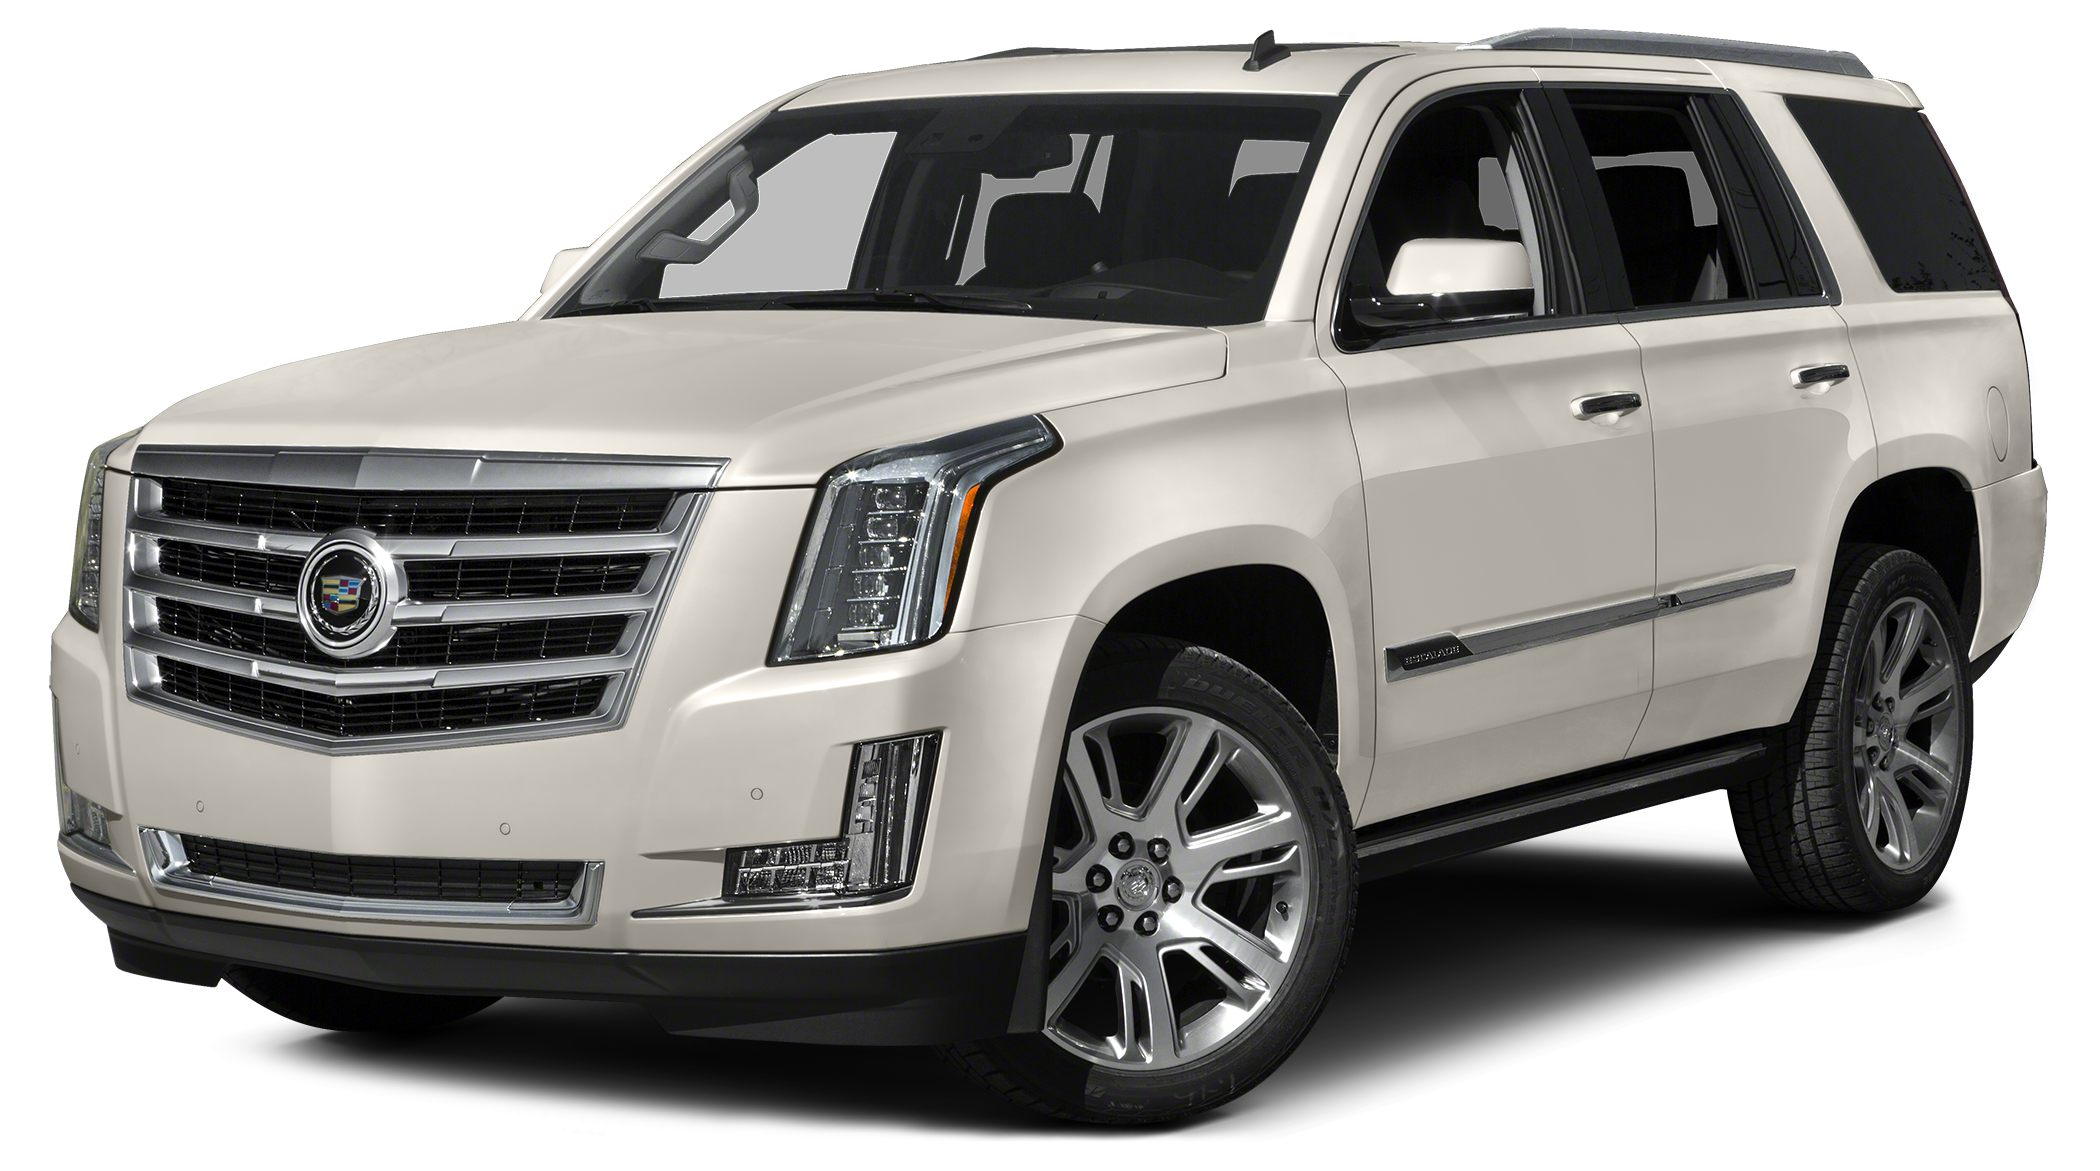 2015 Cadillac Escalade Luxury Miles 8Color White Diamond Clearcoat Stock C15155 VIN 1GYS3MKJ